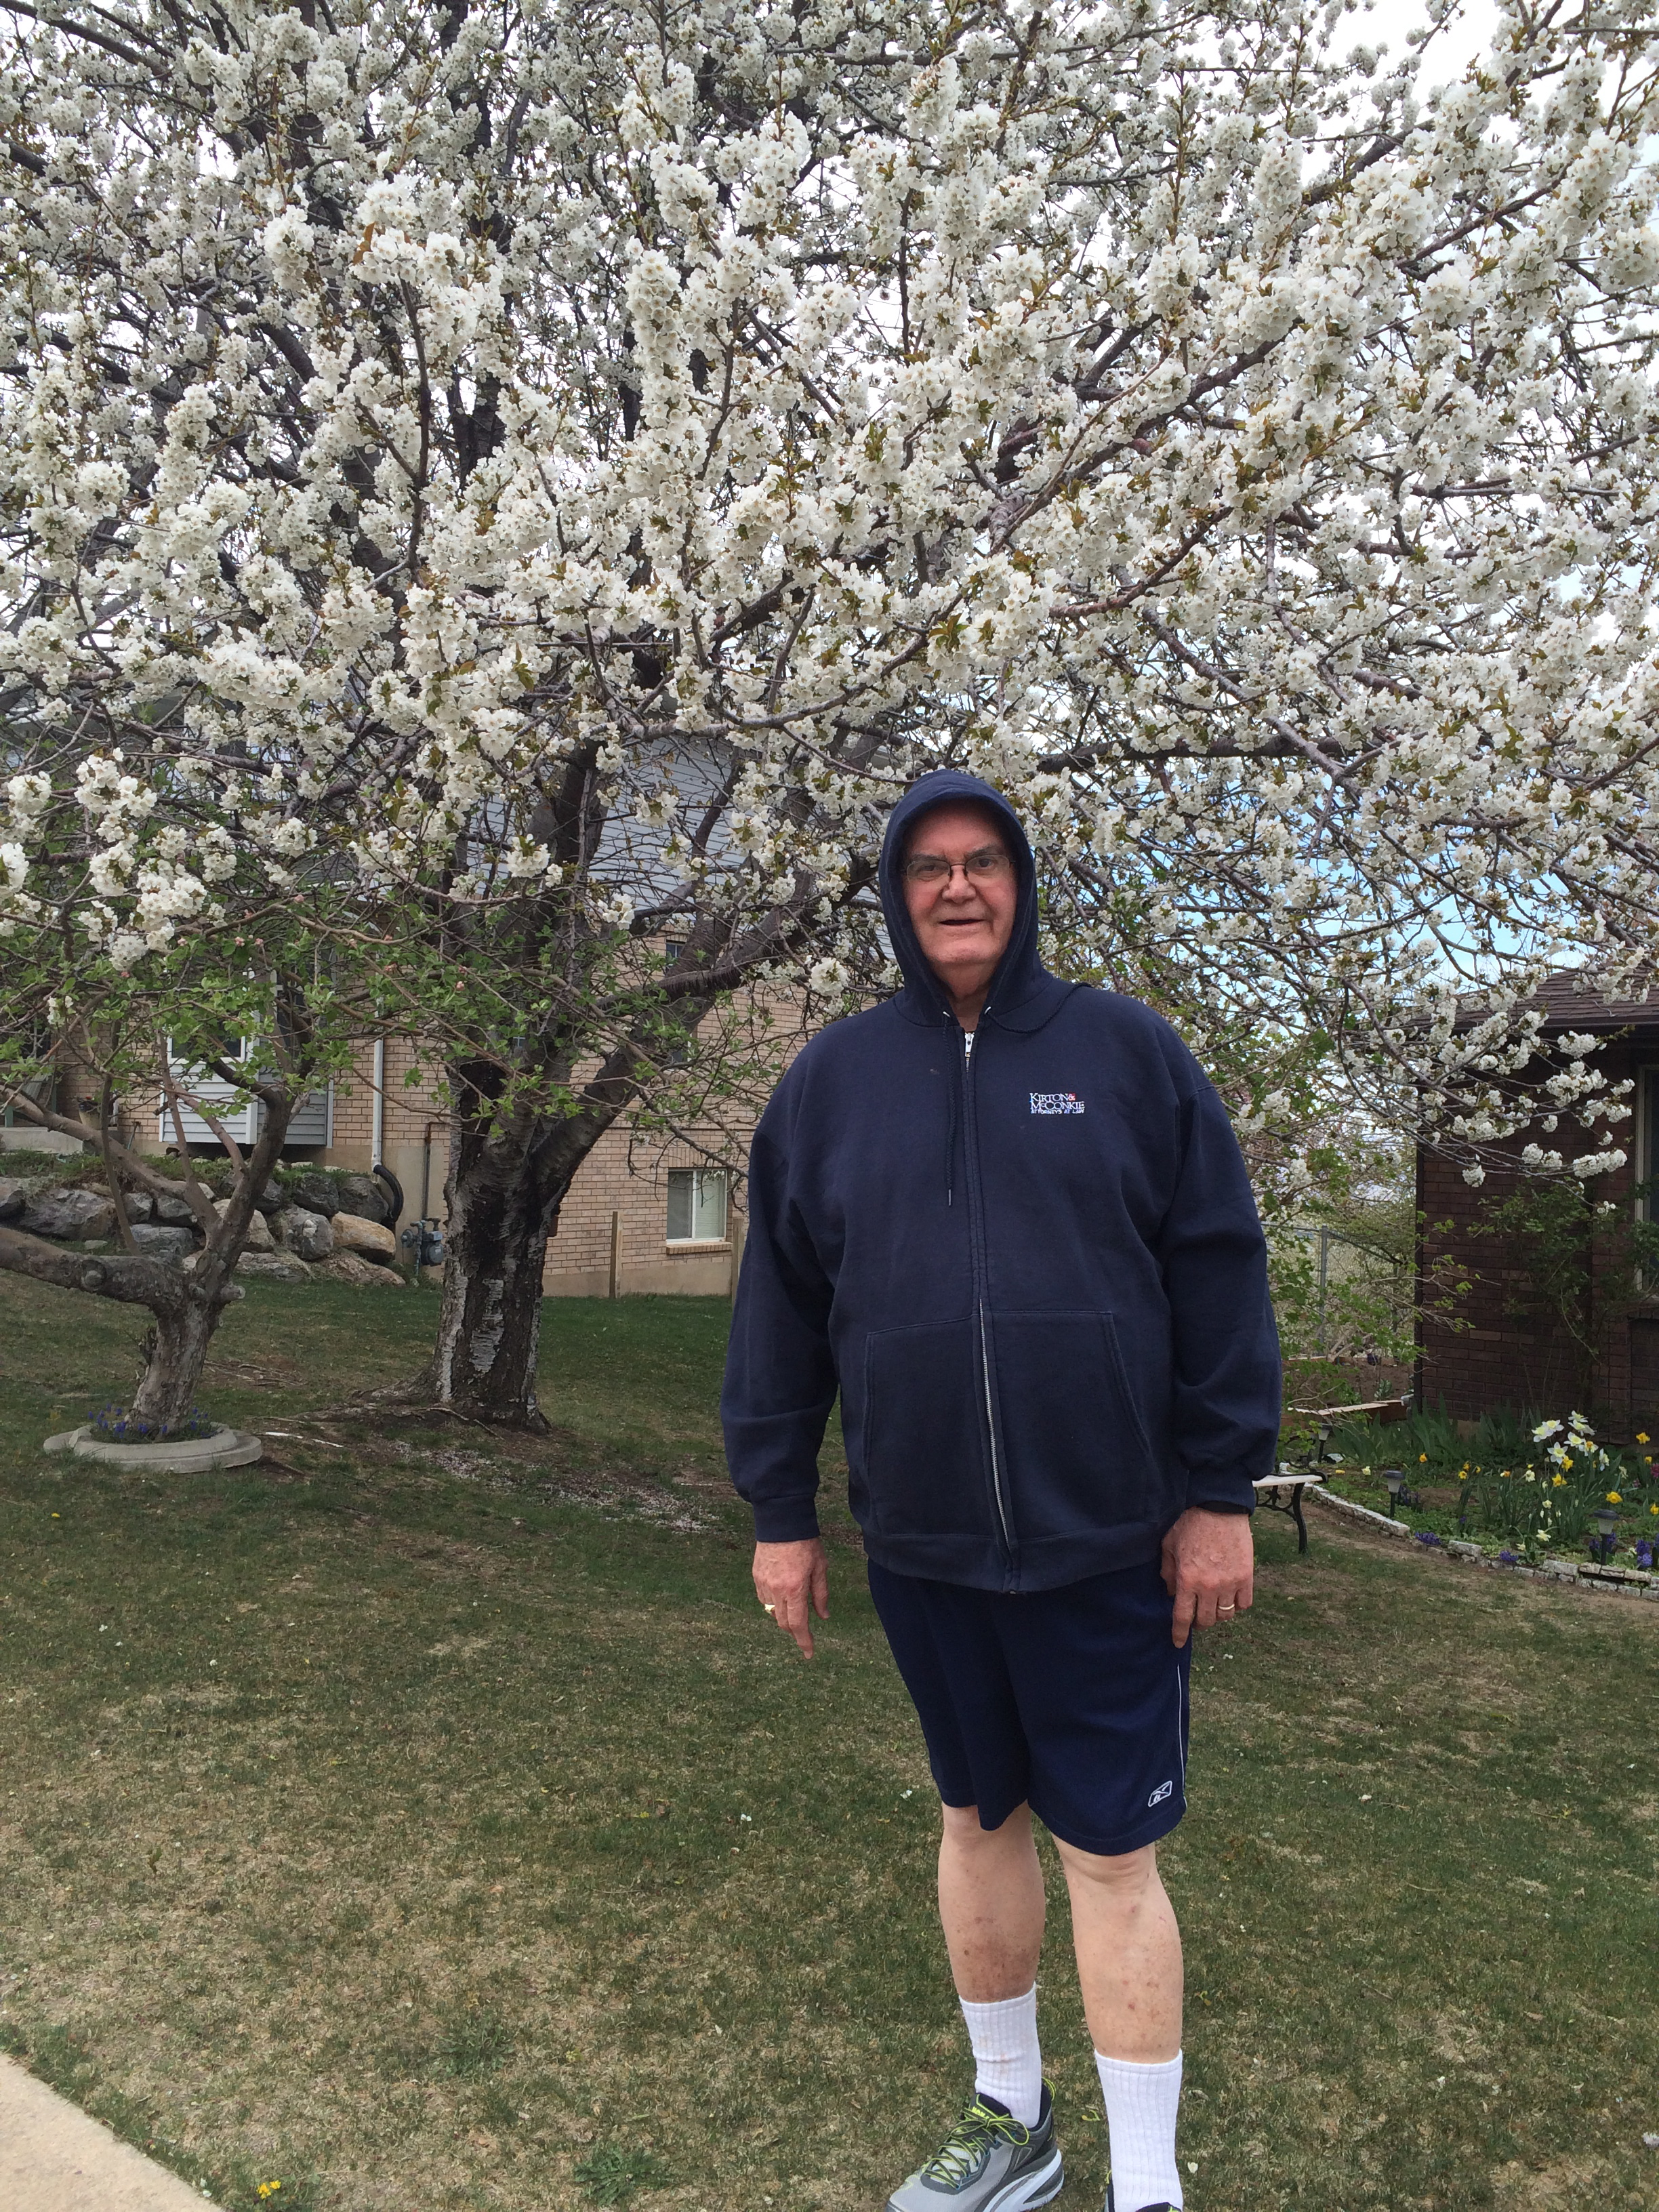 Walks with Dad April 4, 2015 52